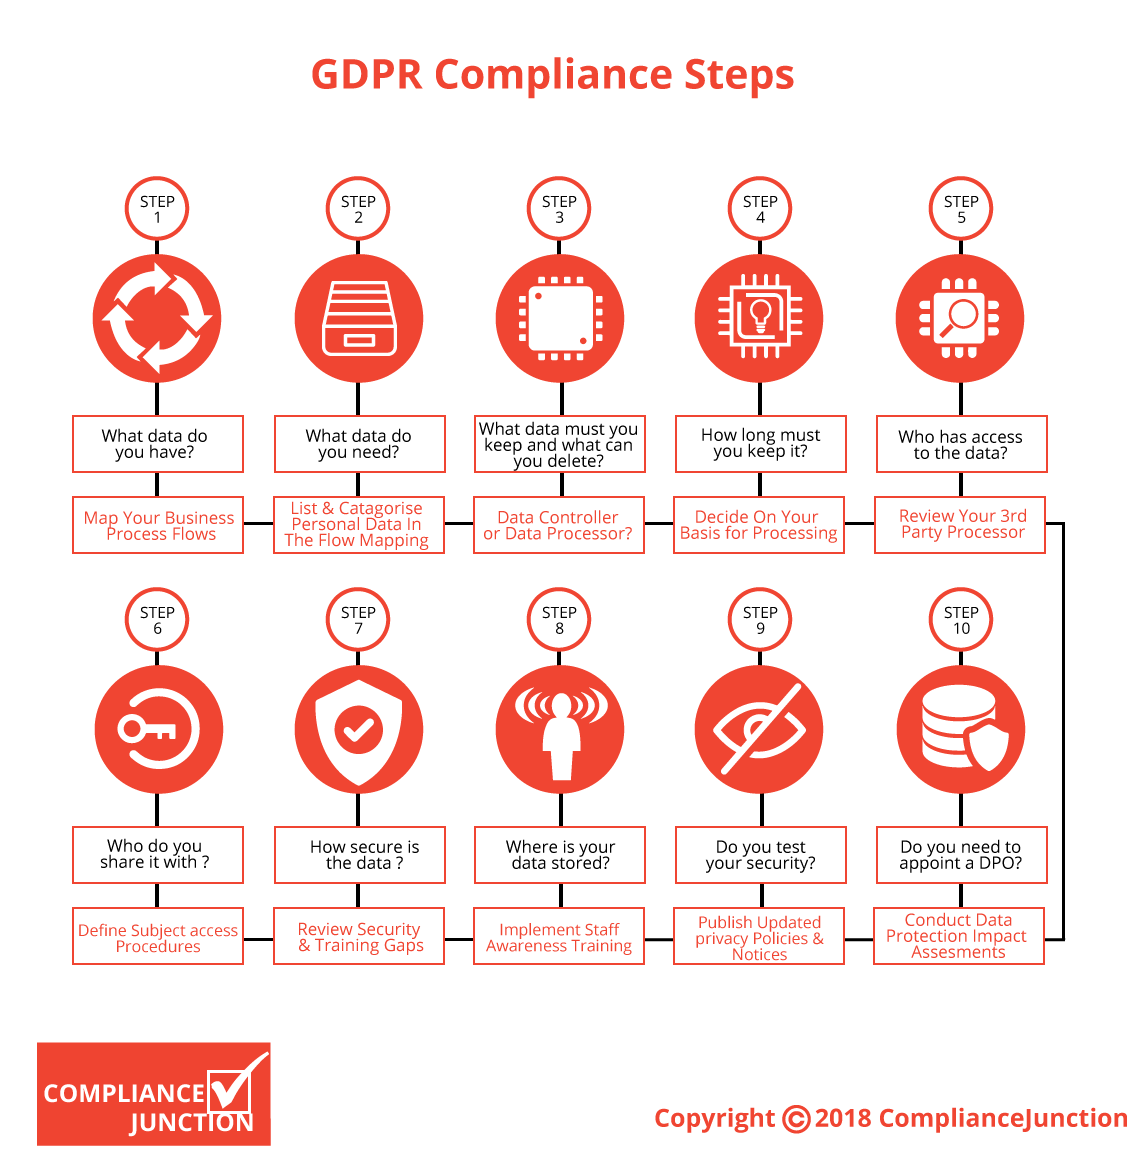 GDPR Compliance Steps Infographic